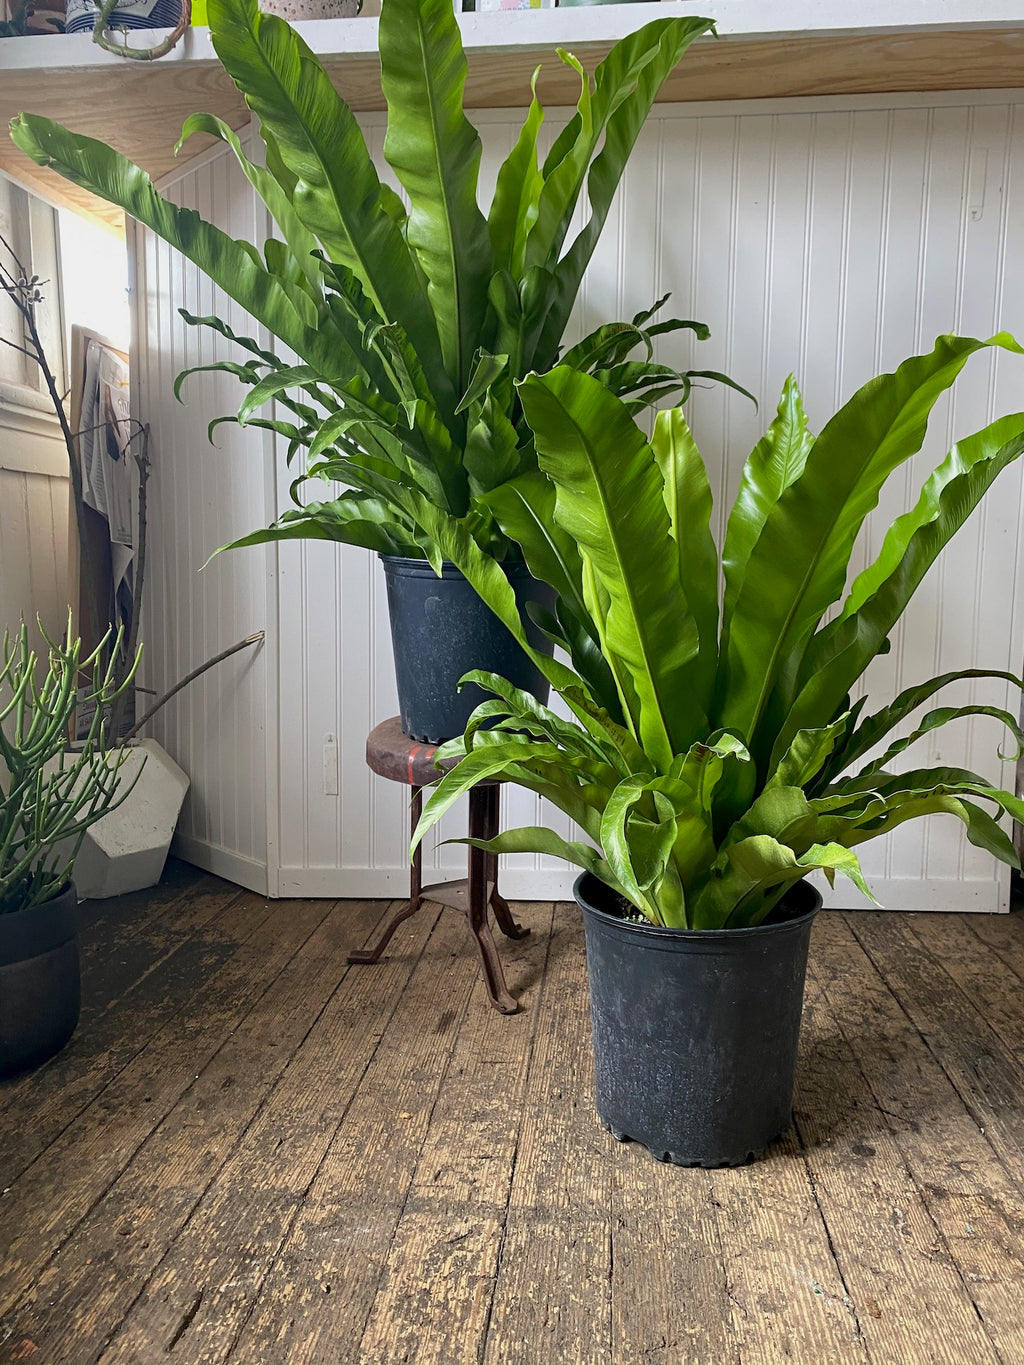 Floor-Standing Bird's Nest Fern